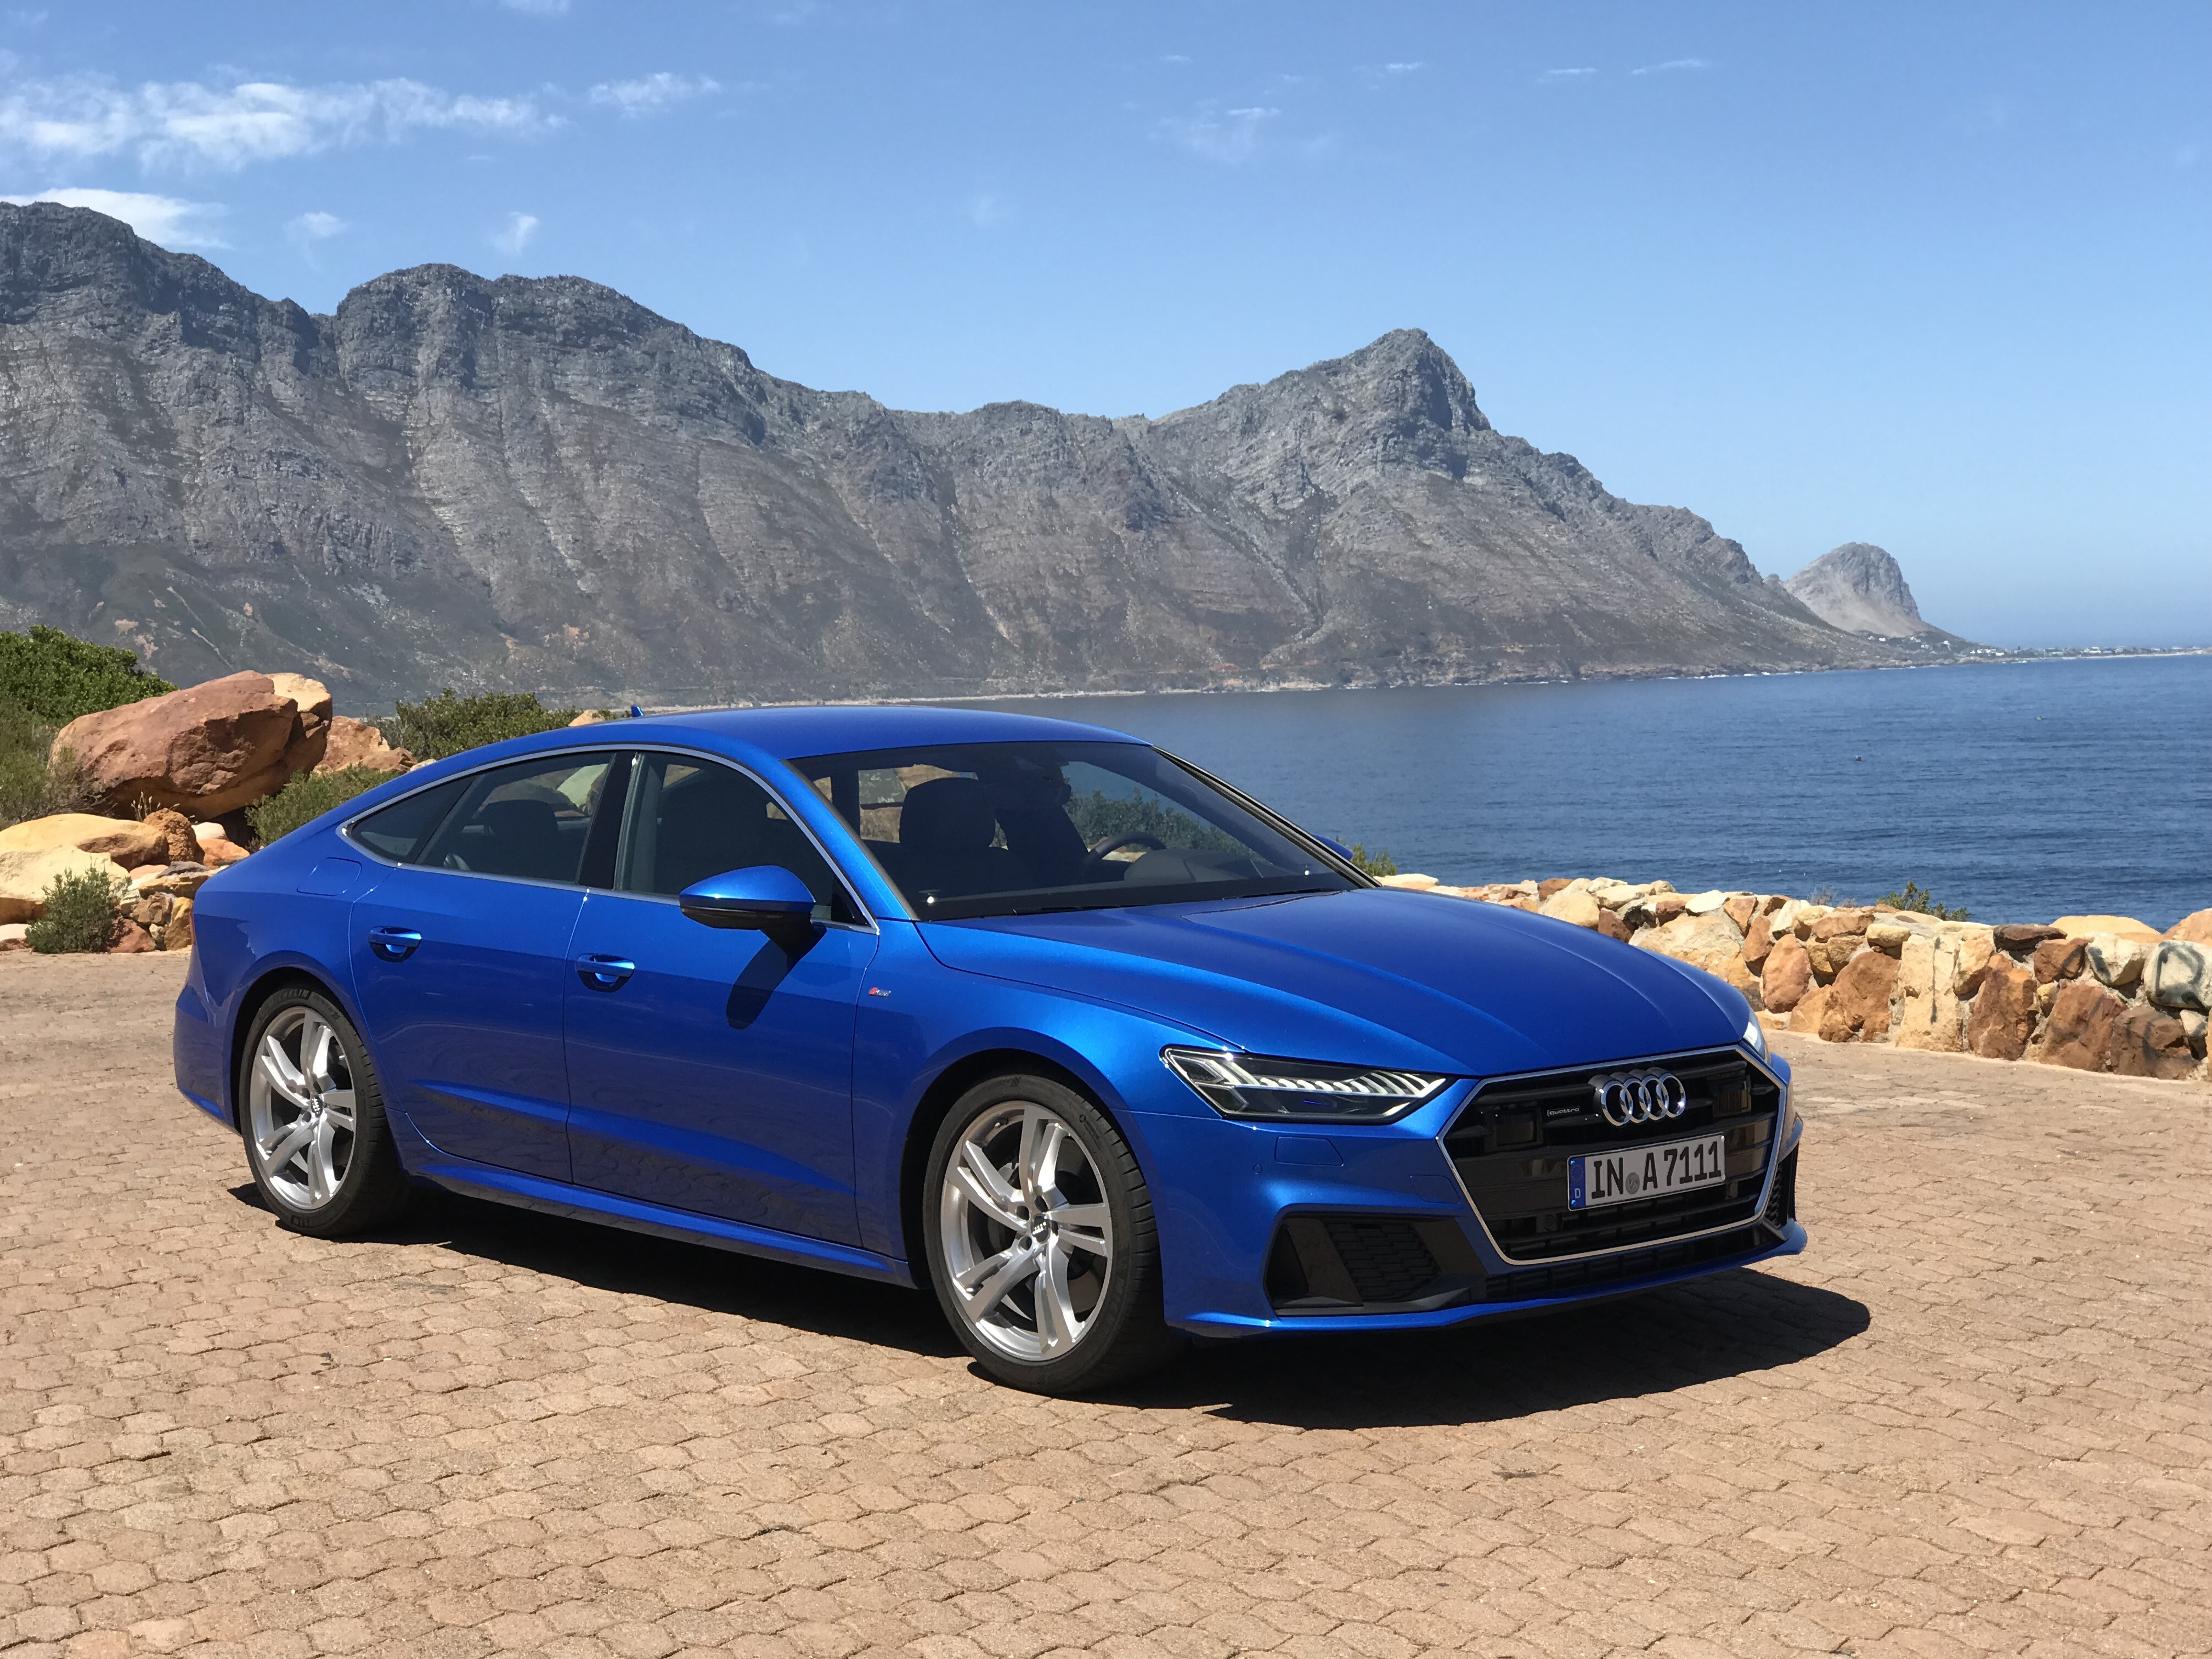 2019 Audi A7 First Drive Review Evolution In Africa Page 3